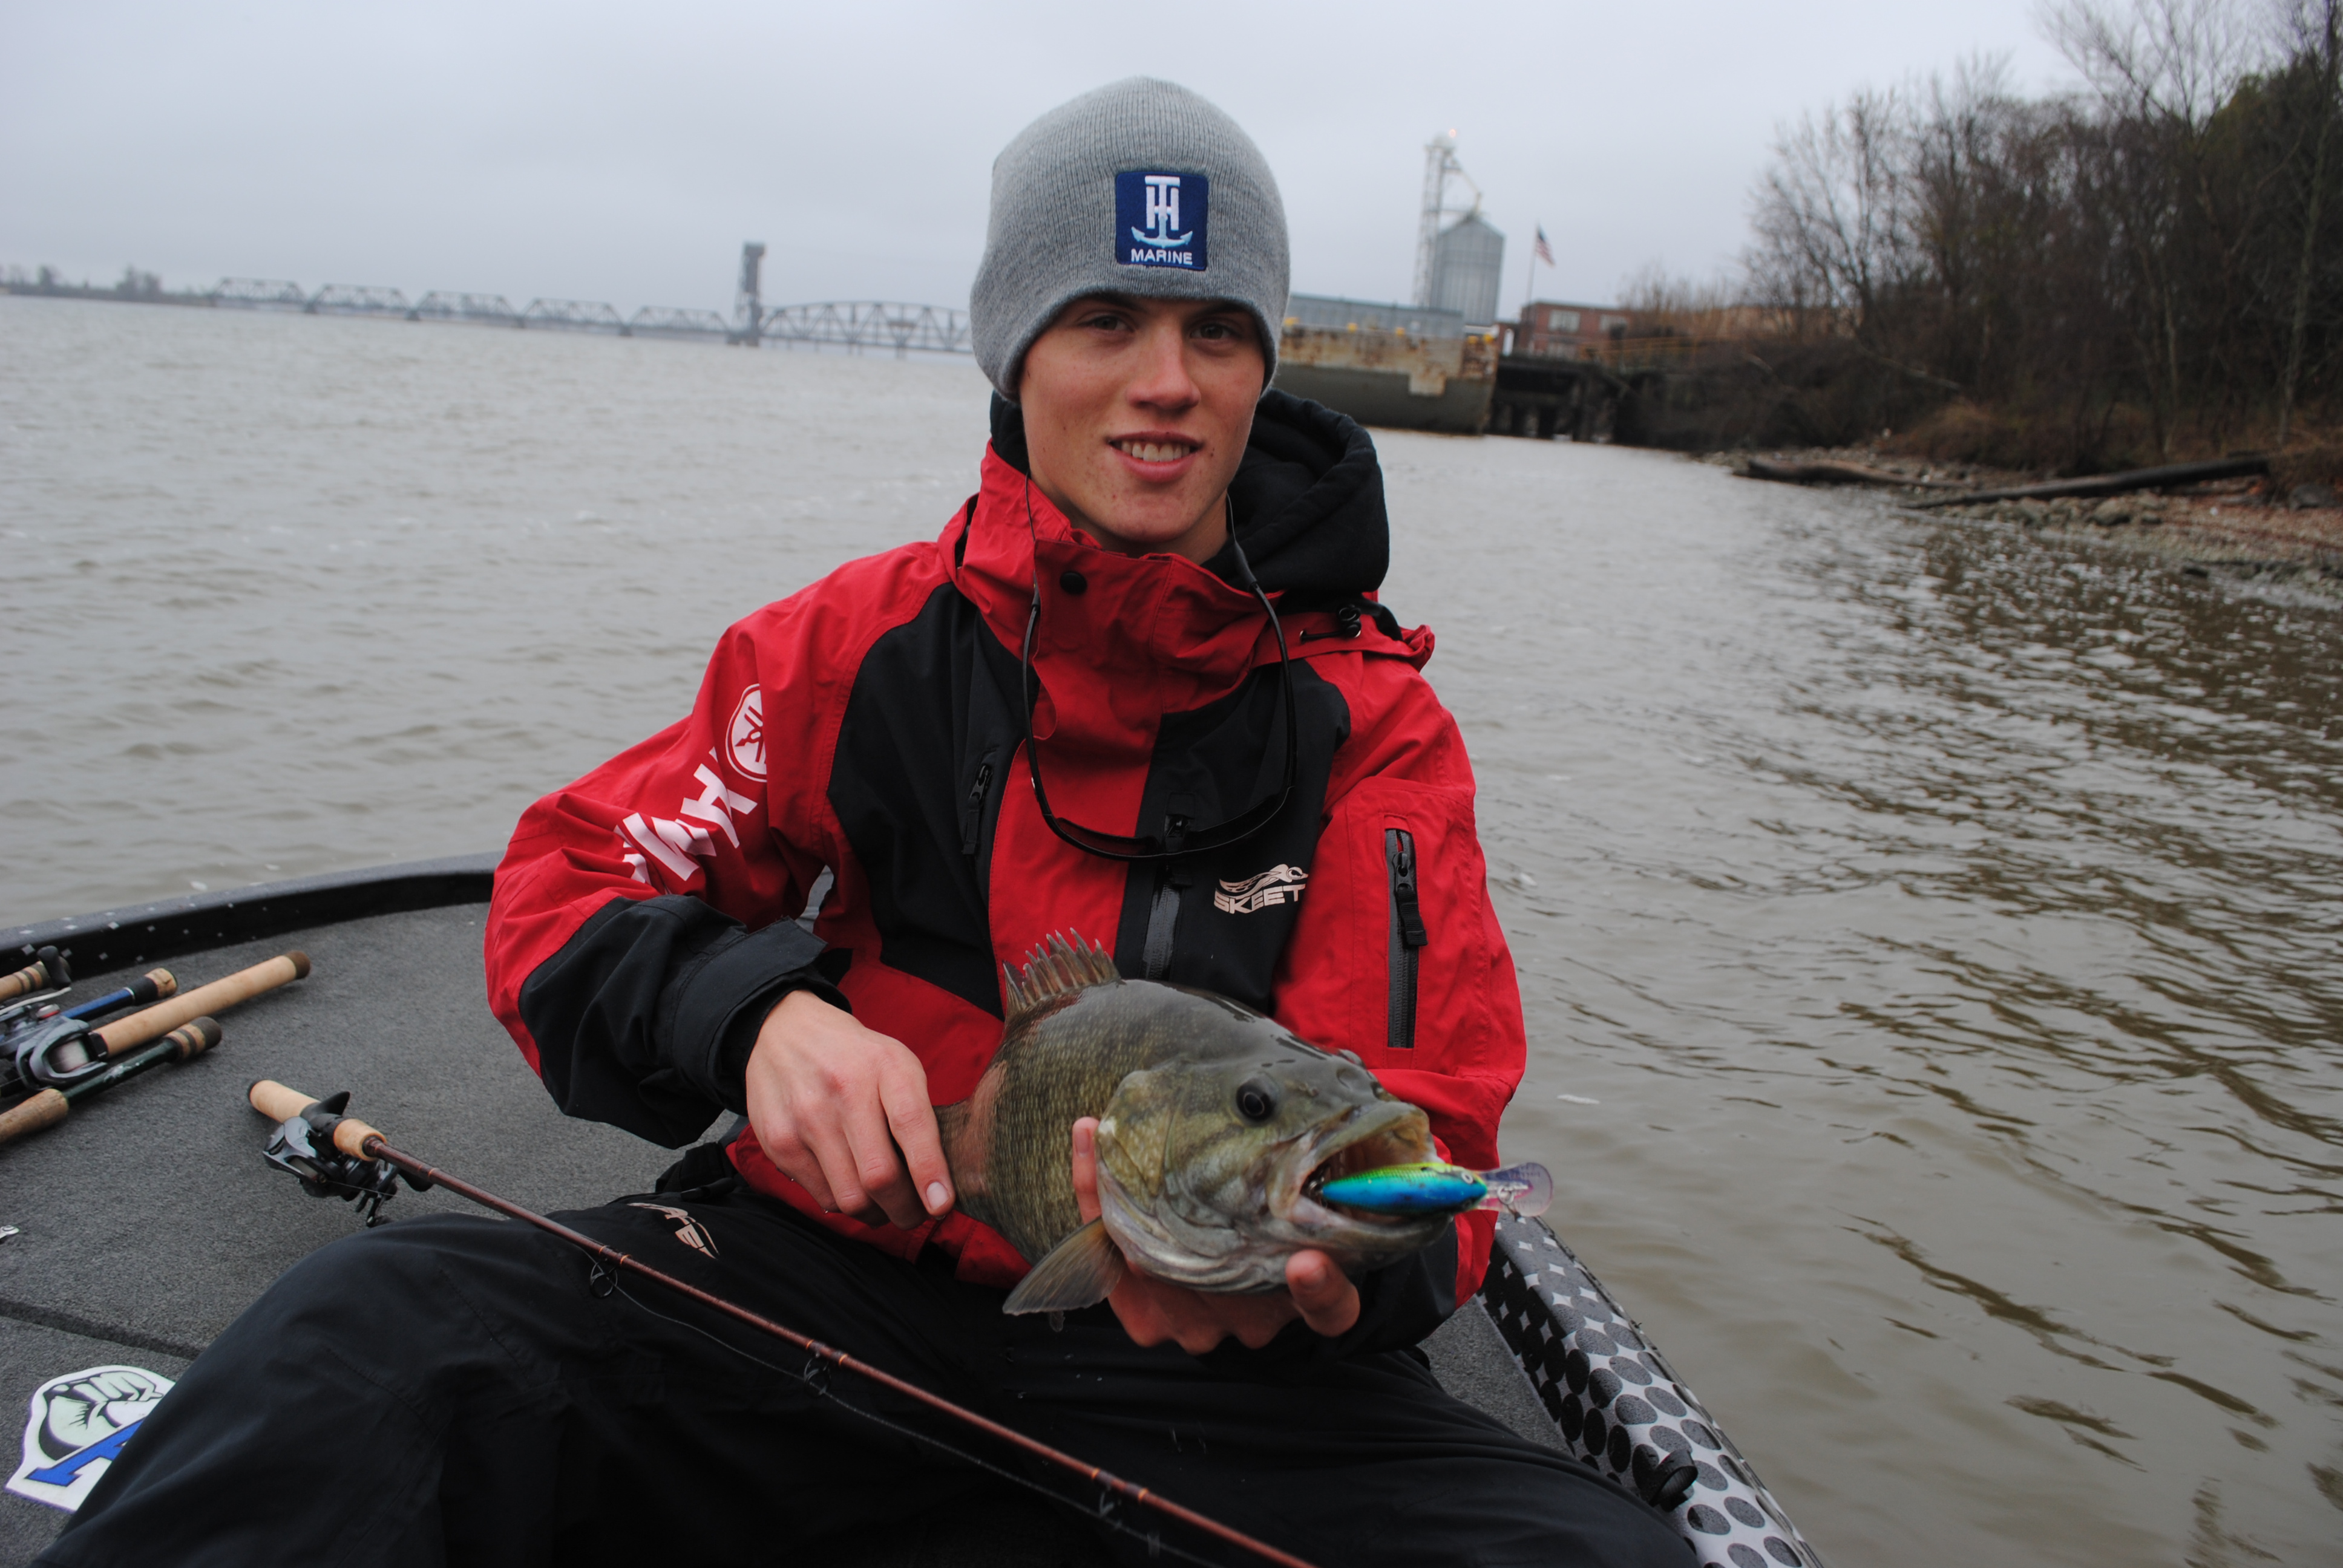 Embedded in the middle of the Tennessee River chain in north Alabama, Wheeler Lake fishing often gets overshadowed among more-publicized sister fisheries like Guntersville and Pickwick.